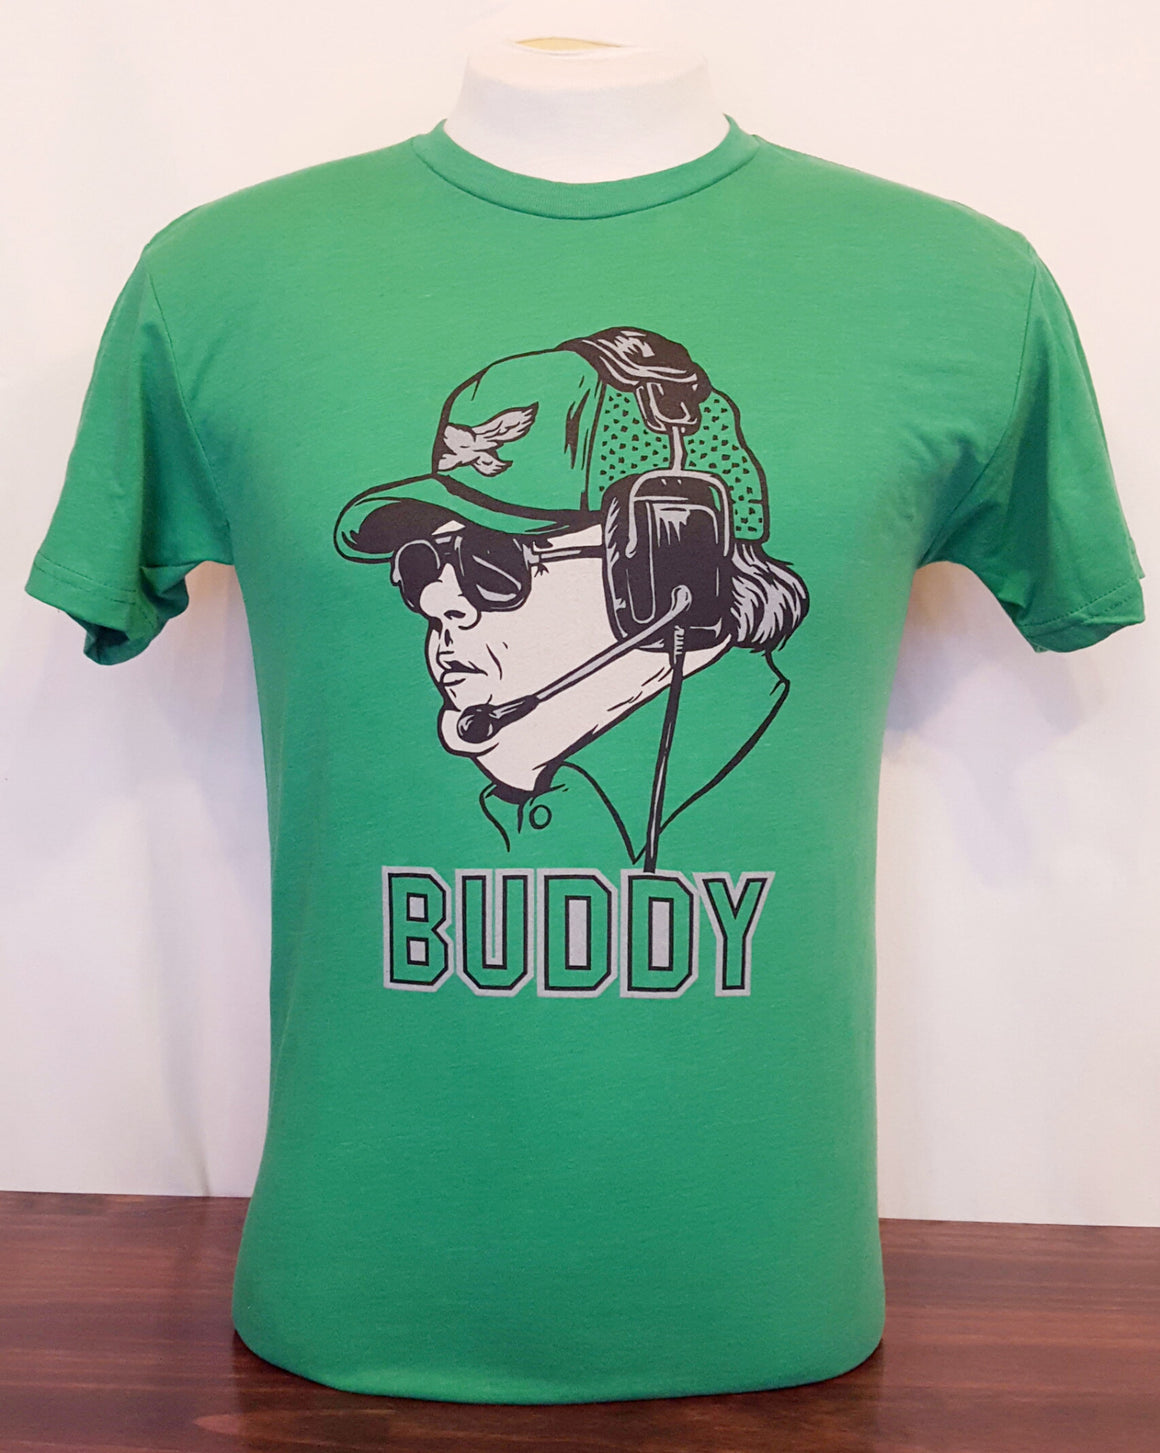 Philadelphia Eagles Buddy Ryan shirt